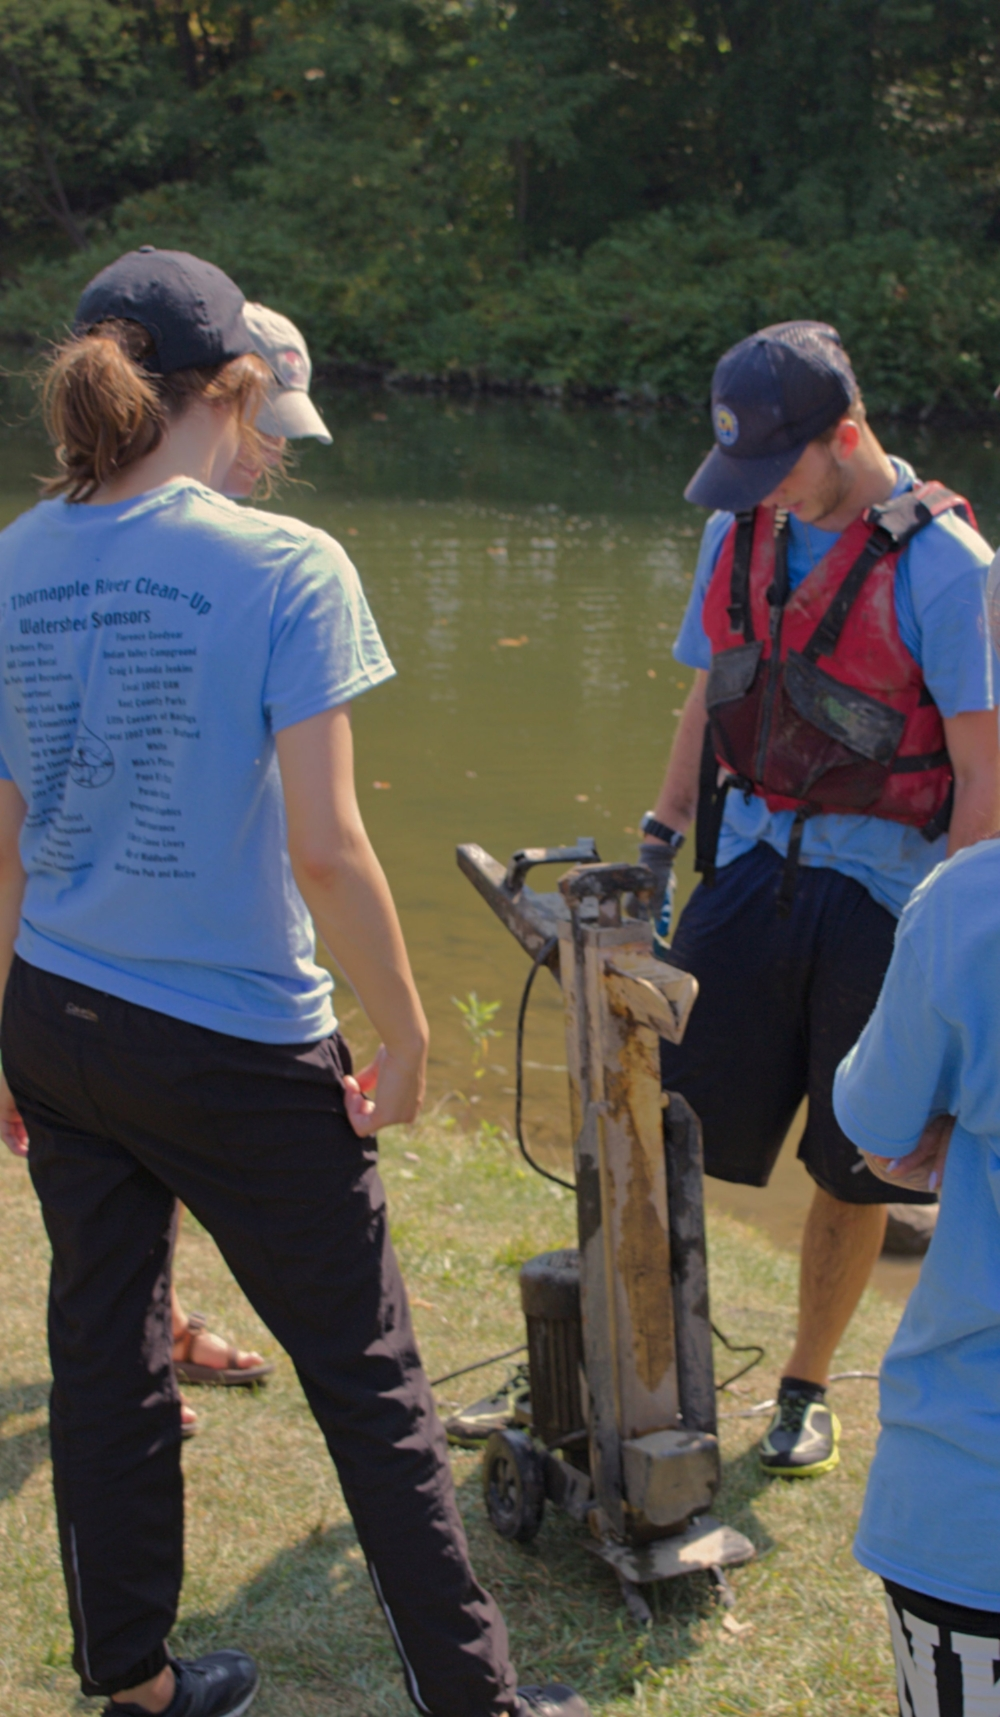 Silverhart(in red) looking at their other big find,an electric log-splitter. It was so heavy that he had to drag it down the riverbank to a place where Duarte, his canoe partner, could maneuver close to load it in underneath the car rooftop they had already recovered.